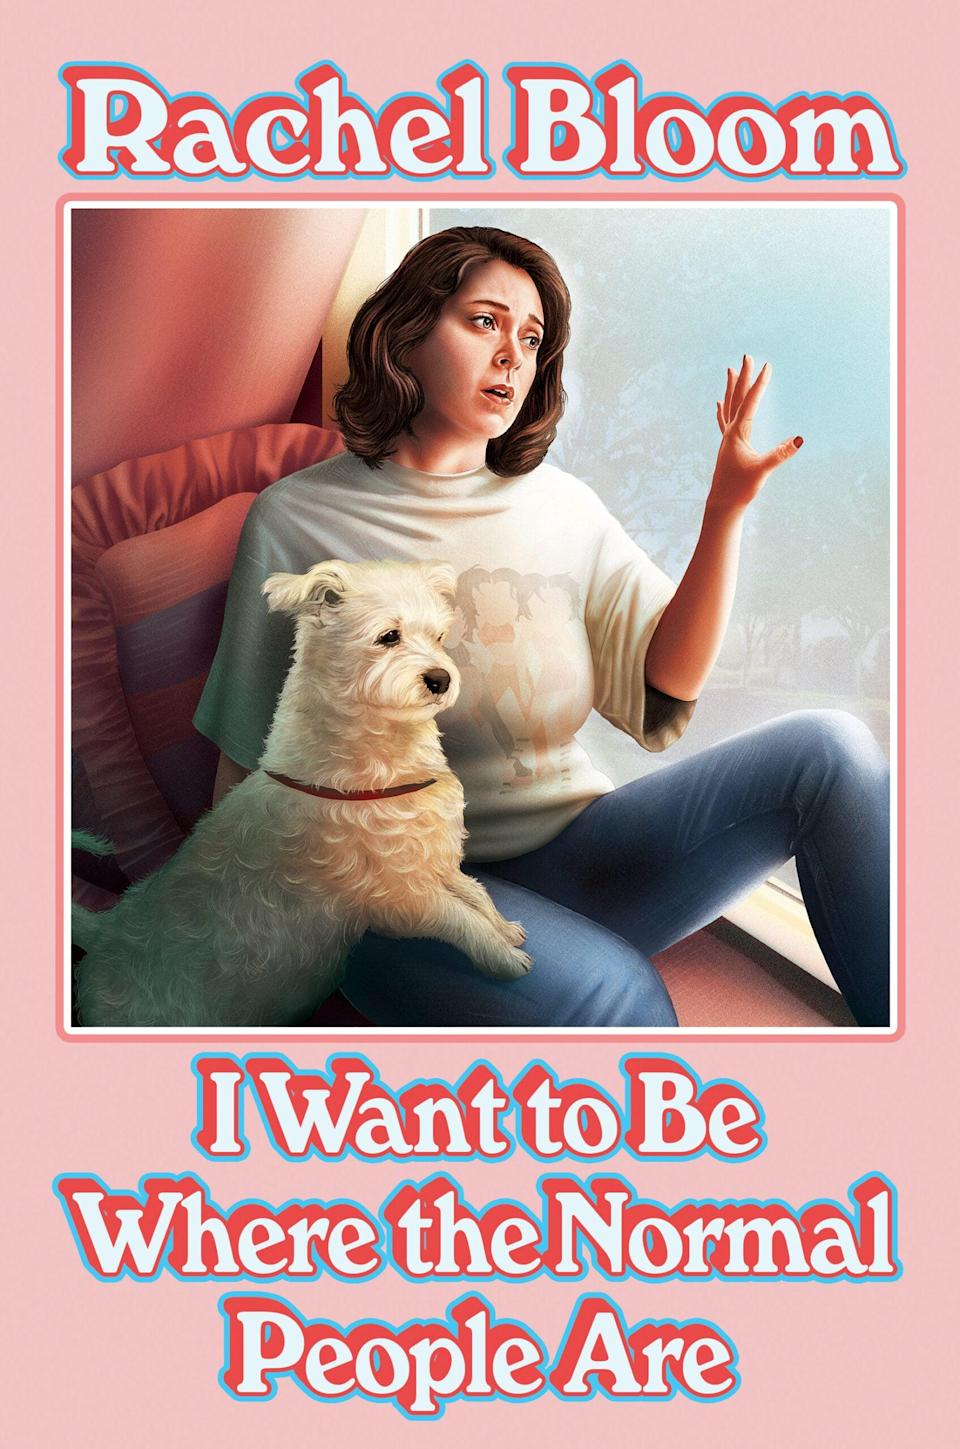 "<p><strong>Crazy Ex-Girlfriend</strong> co-creator Rachel Bloom's first collection of essays, <span><strong>I Want to Be Where the Normal People Are</strong></span>, is both hilarious and endlessly relatable. Whether she's writing about her lifelong desire to be ""normal"" or revealing her Disney obsession, reading Bloom's essays is like chatting with your wittiest friend. </p> <p><em>Out Nov. 17</em></p>"